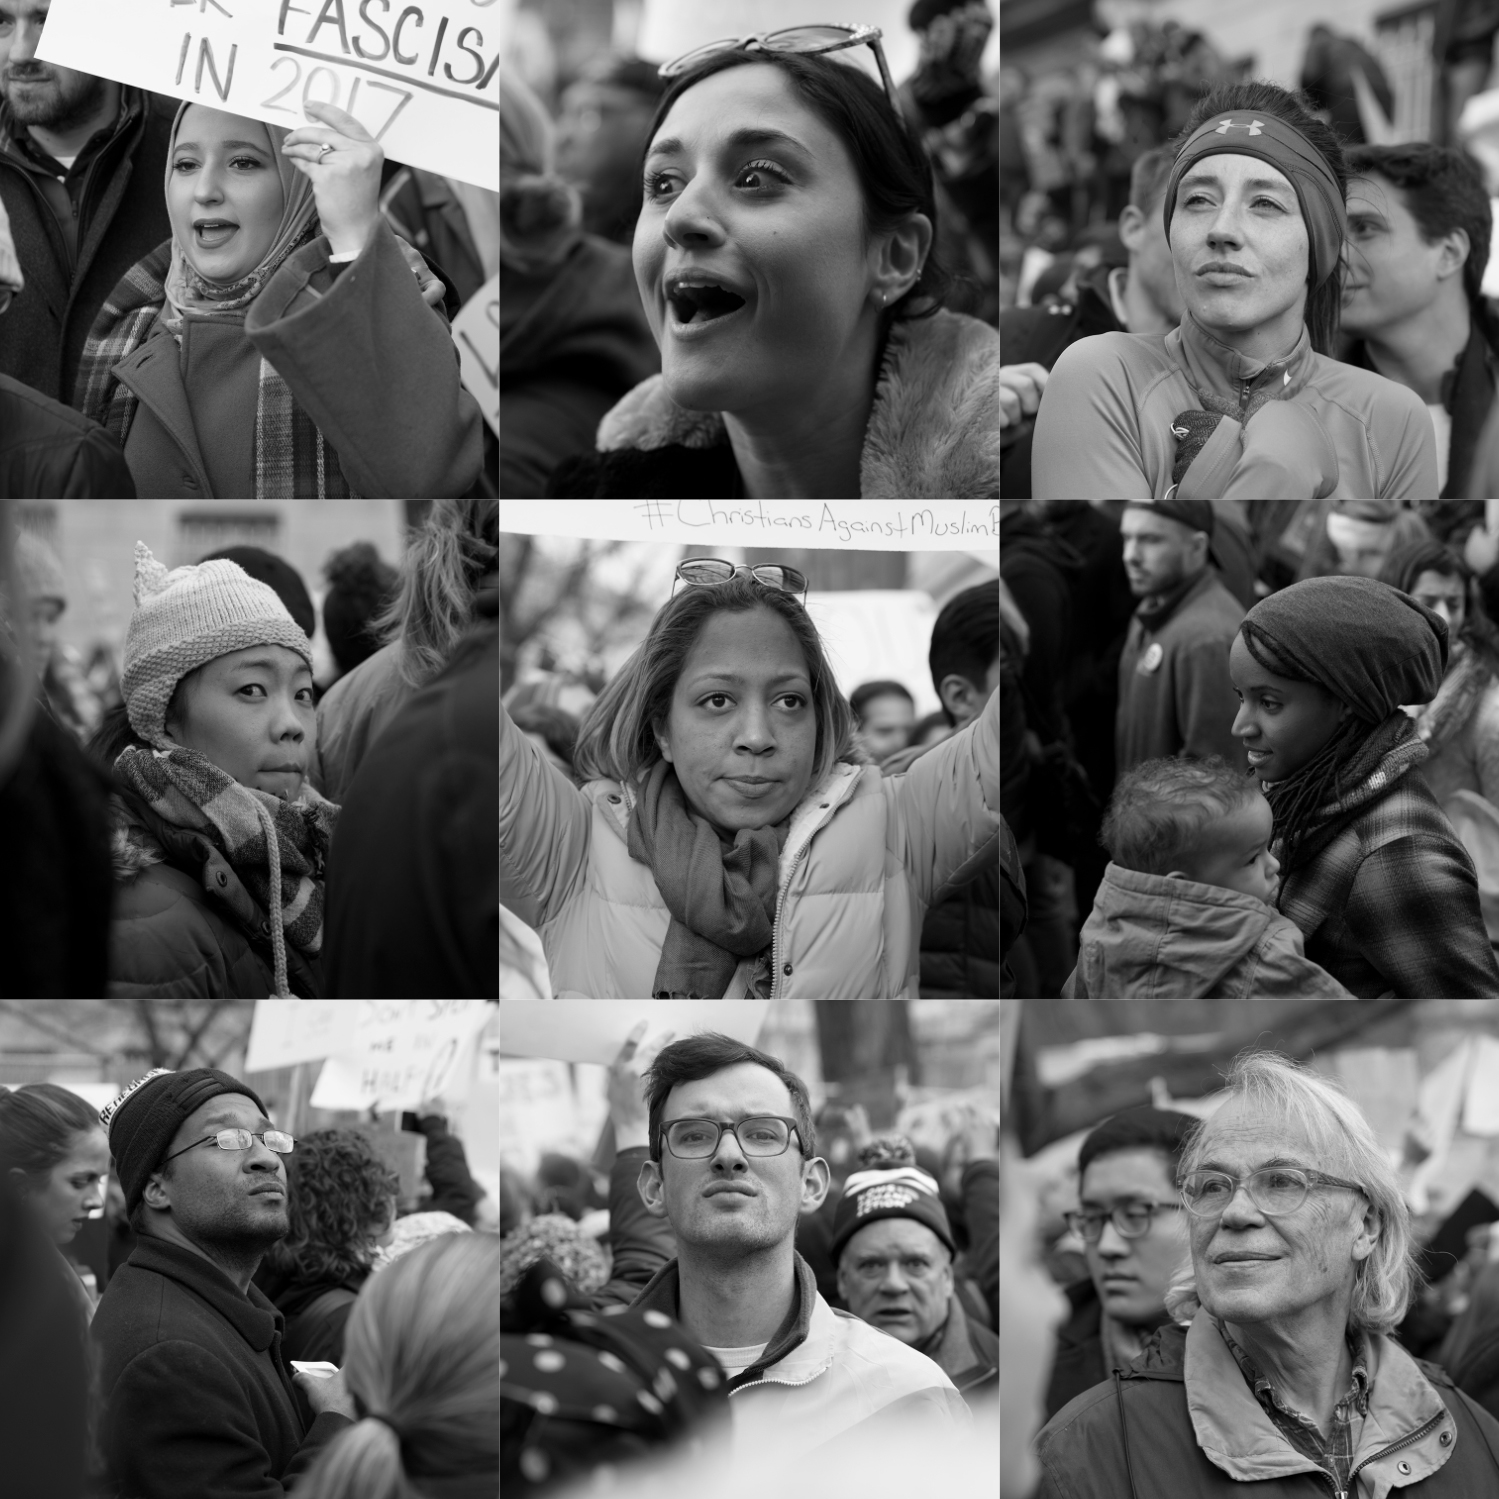 Faces of participants of the No Muslim Ban protest at Lafayette Park, in Washington D.C., January 29, 2017. Photos: Ivan Sigal